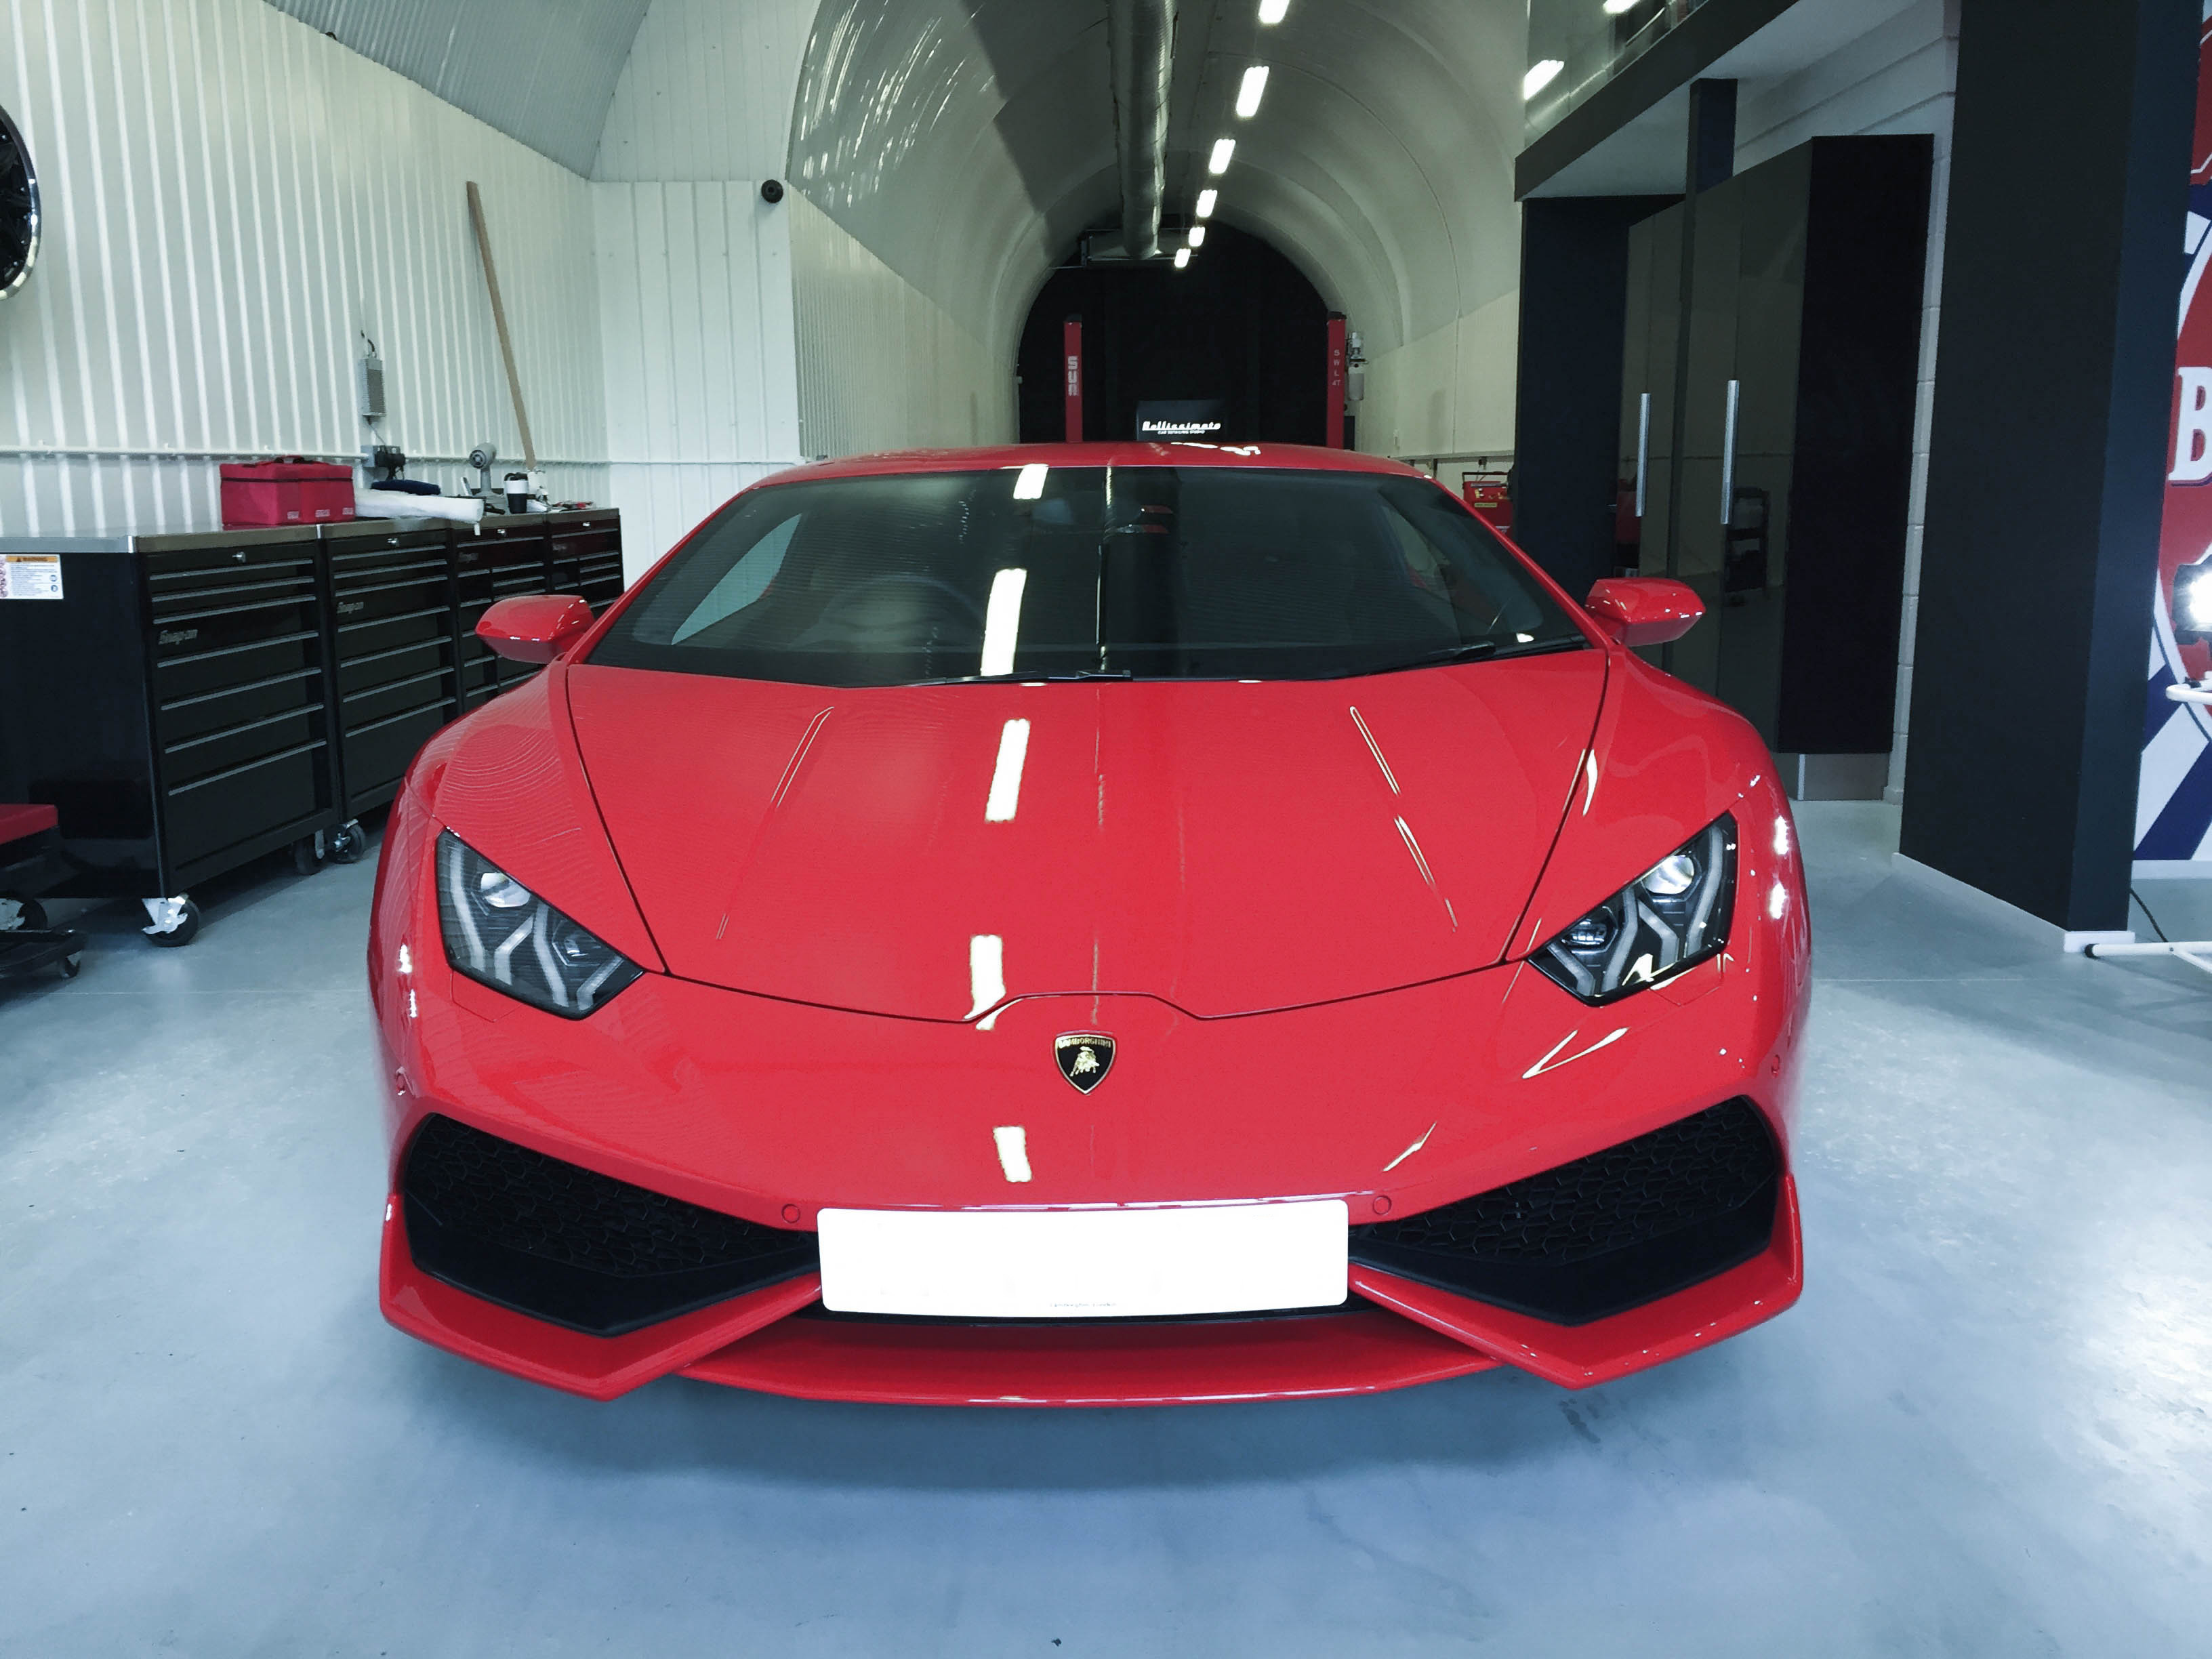 Lamborghini Huracan – Head on